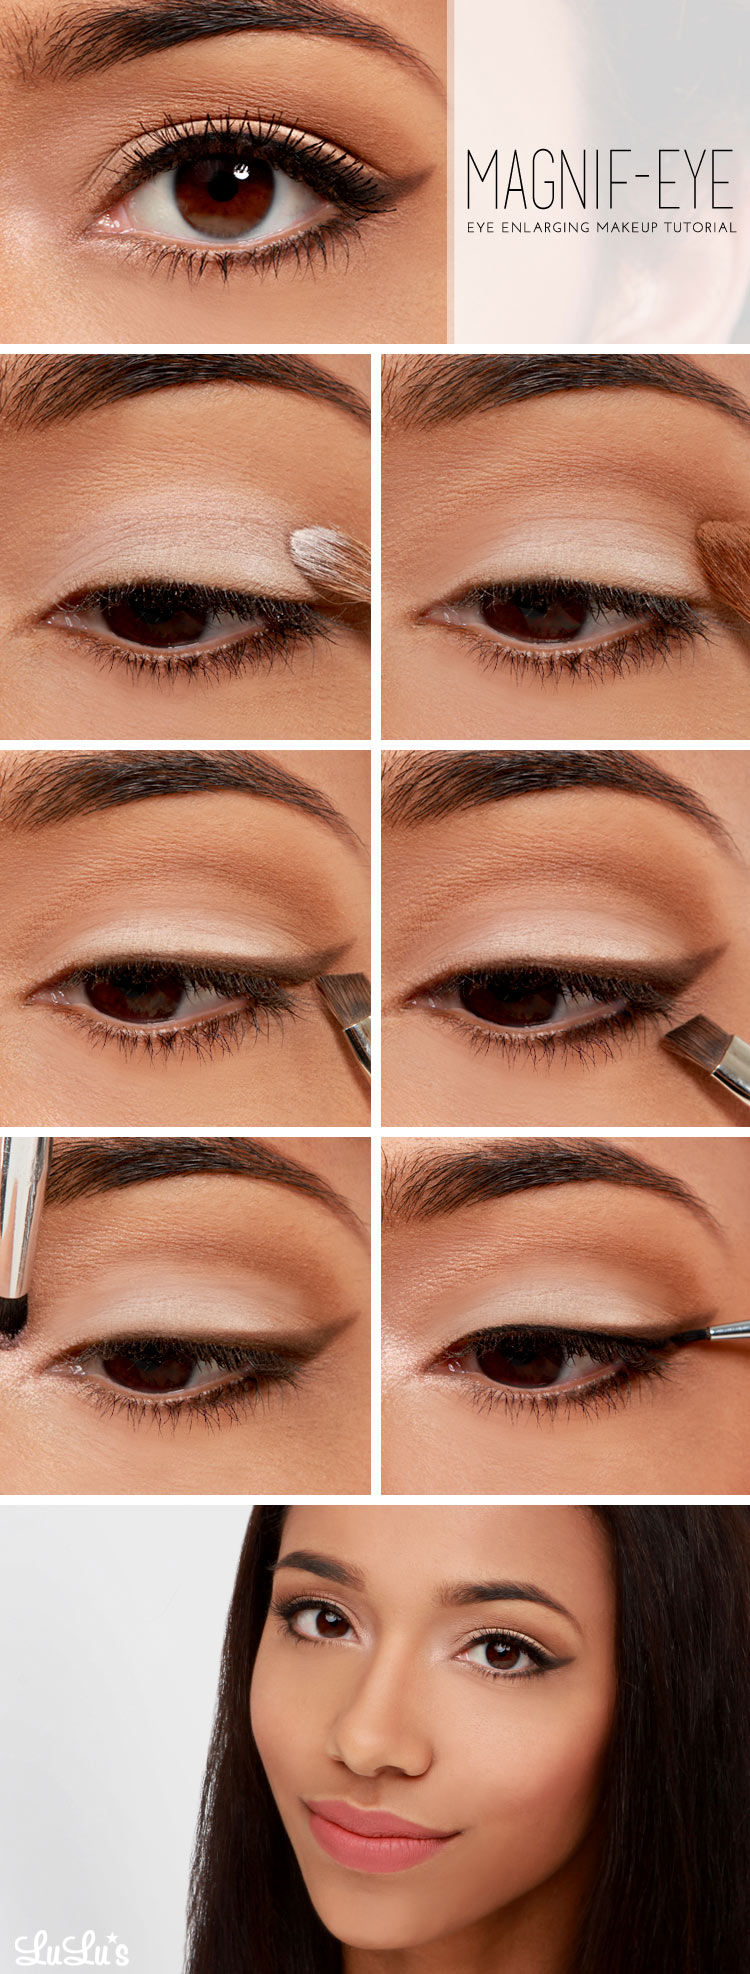 Learn how to do eye makeup